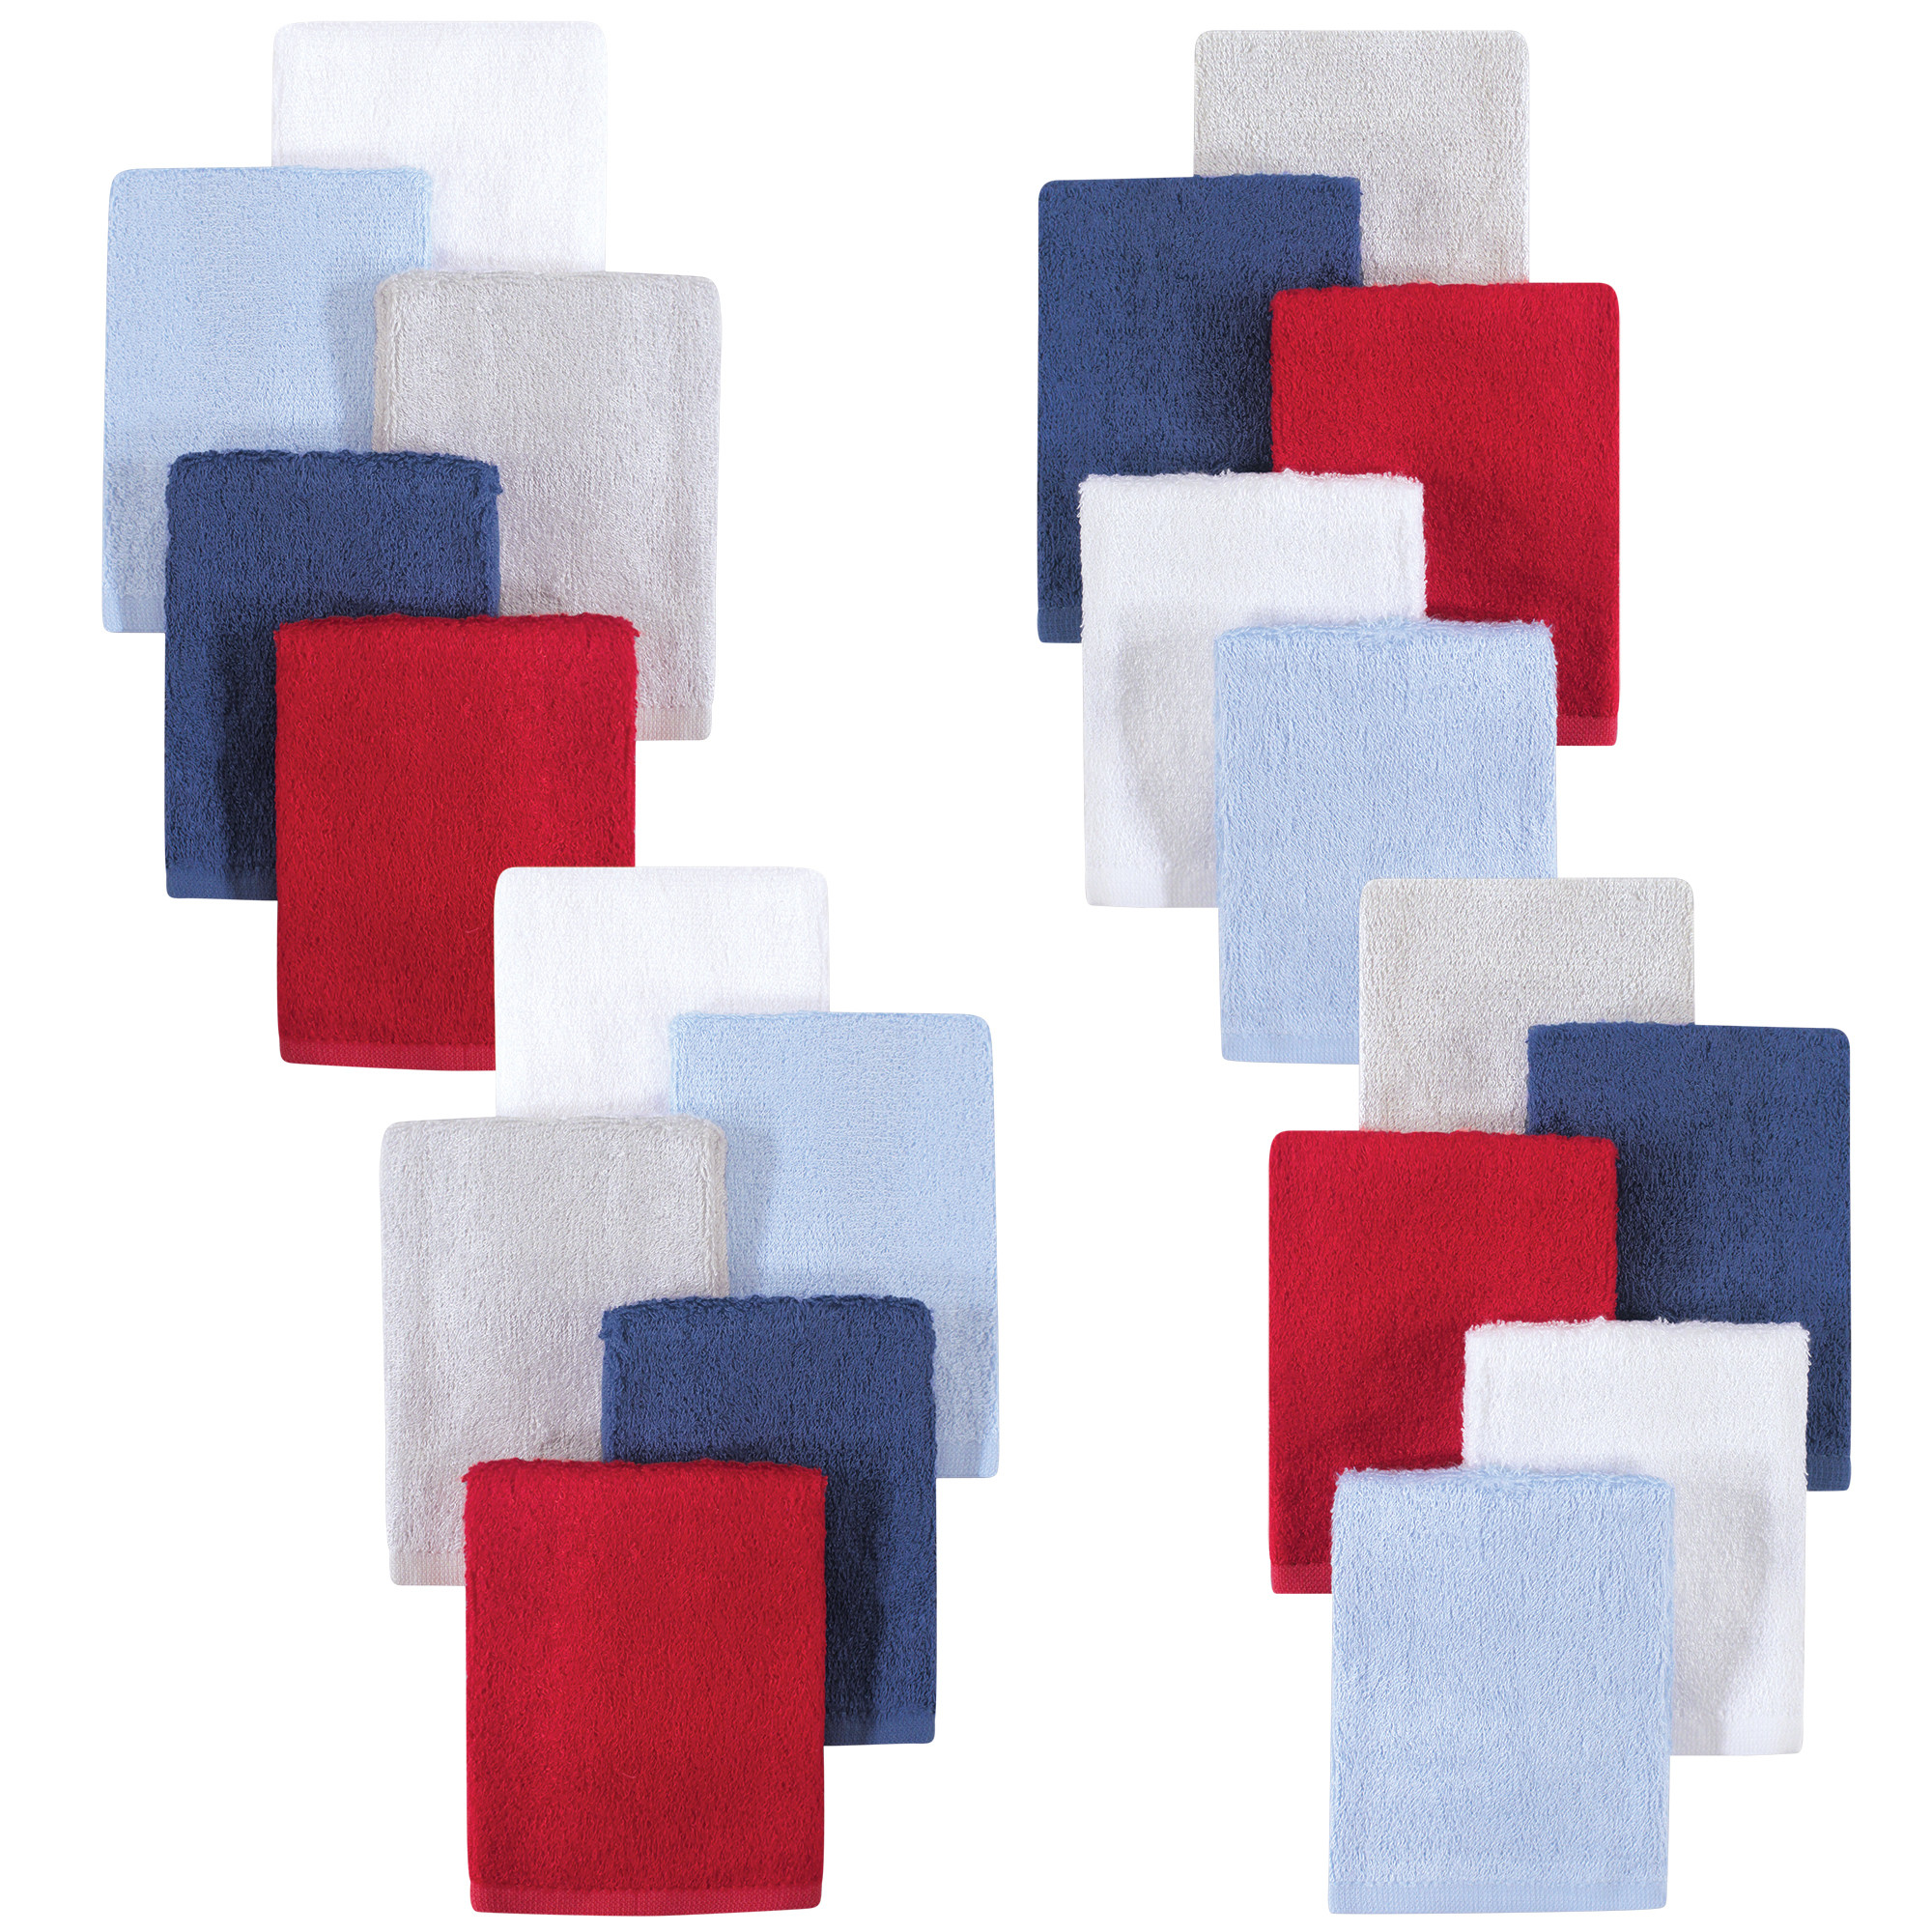 Little Treasure Luxuriously Soft Washcloths, 20 Pack, Blue Red by Little Treasure